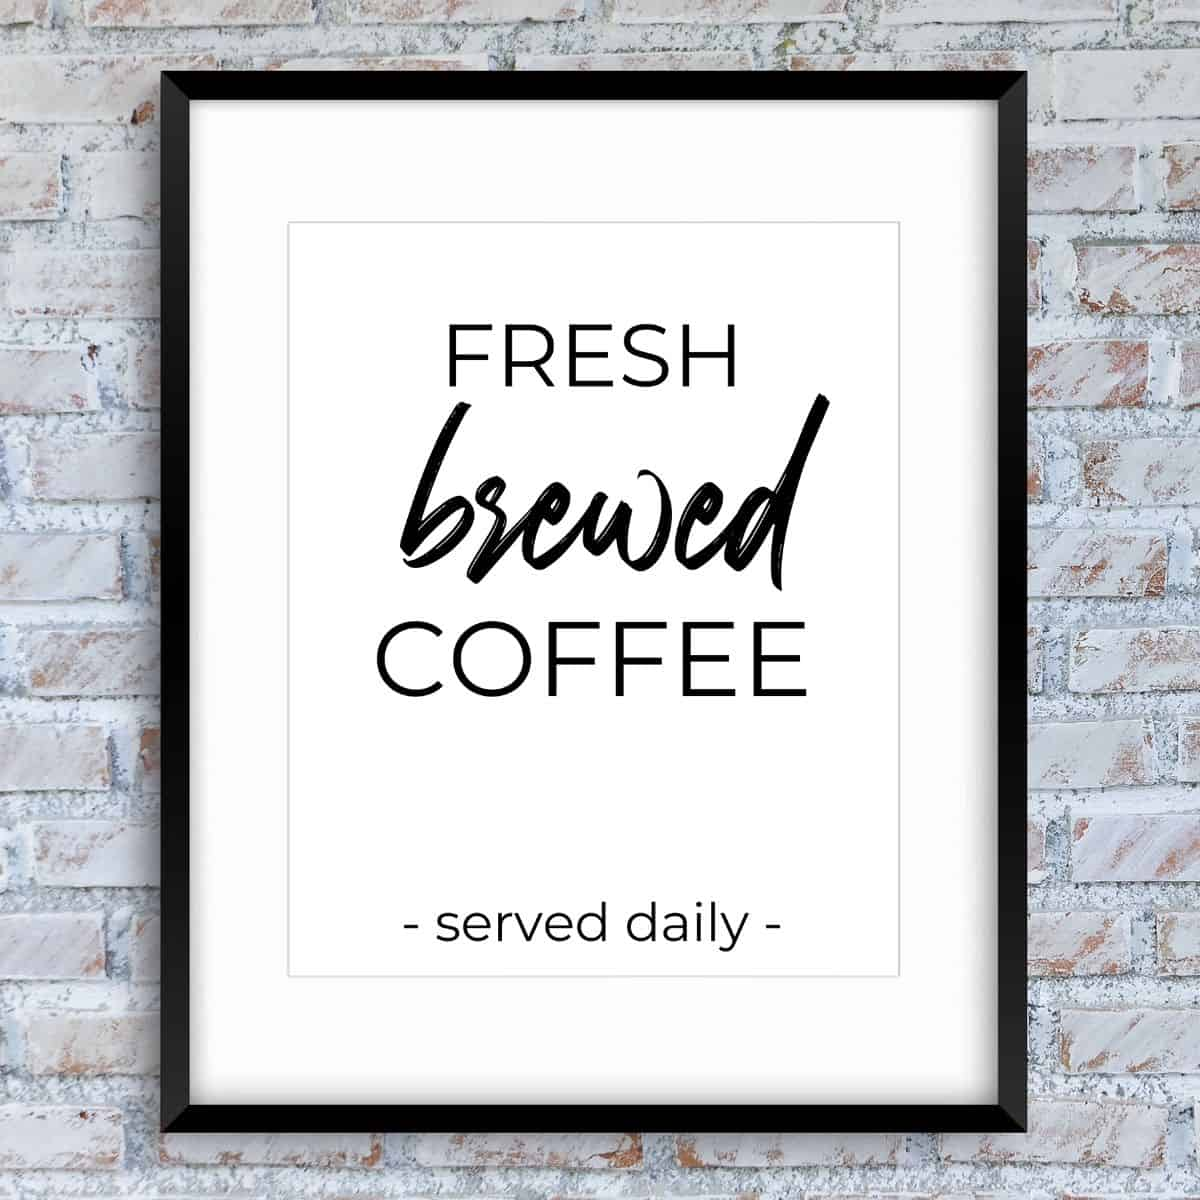 Black frame on the brick wall with the text: Fresh brewed coffee served daily